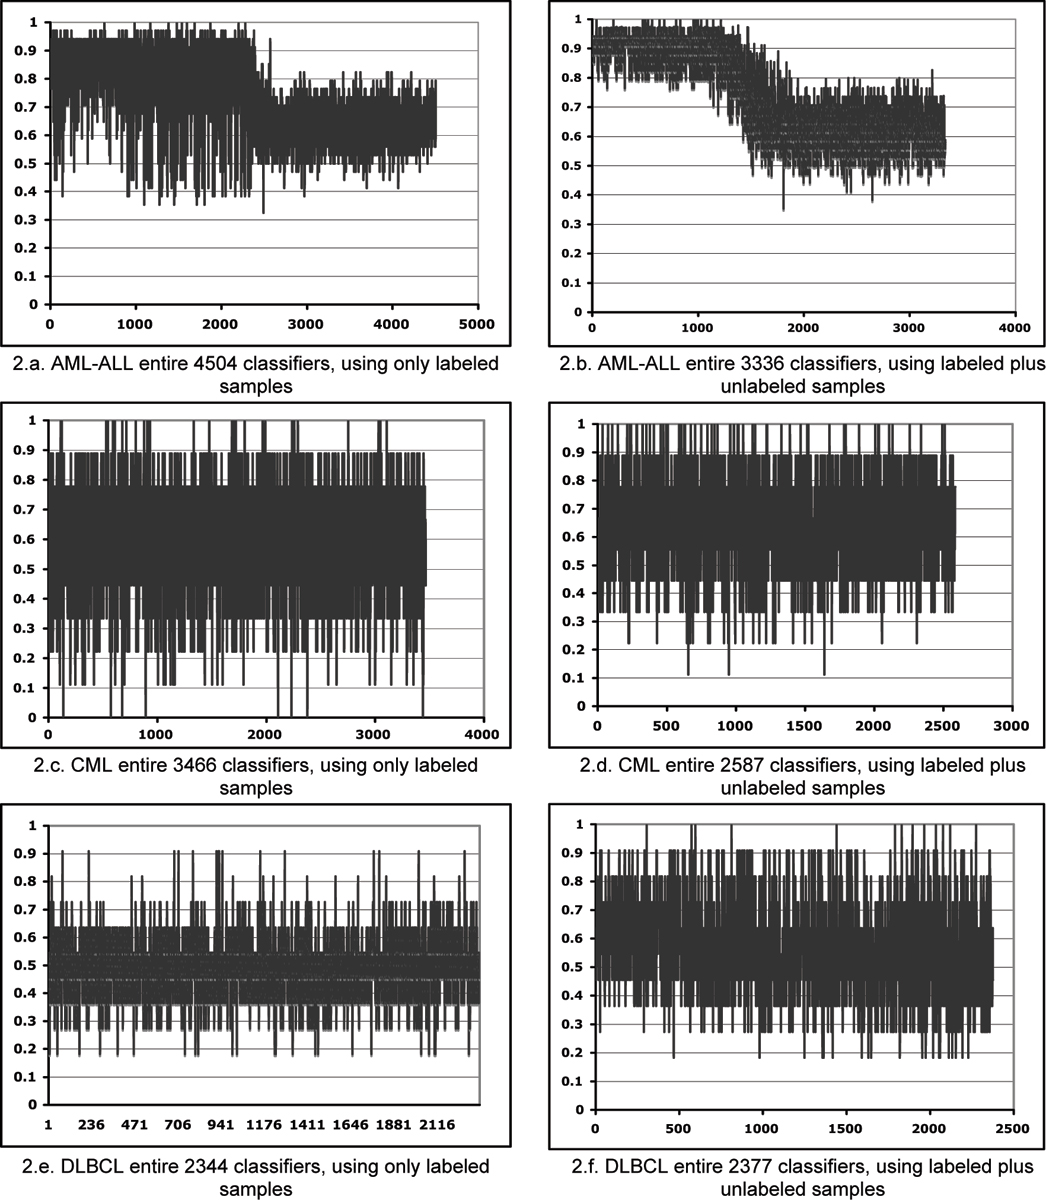 http://static-content.springer.com/image/art%3A10.1186%2F1471-2164-9-S2-S7/MediaObjects/12864_2008_Article_1864_Fig2_HTML.jpg